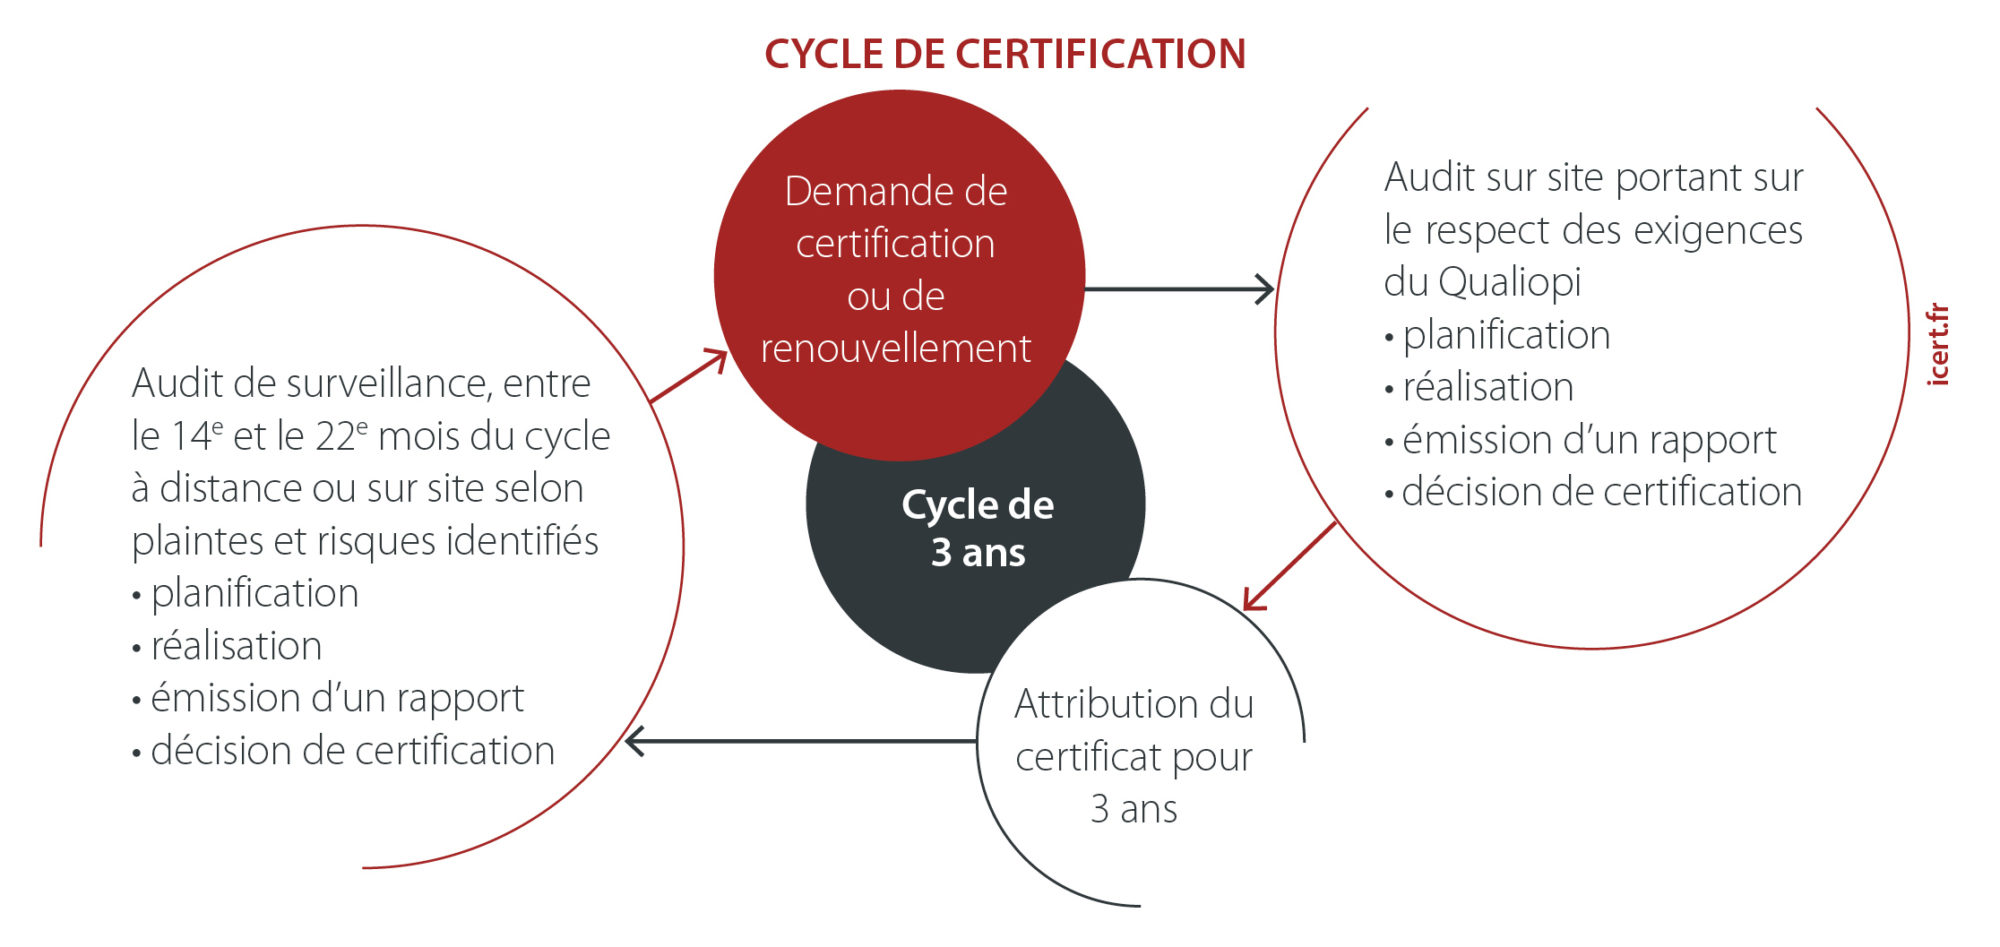 Cycle de certification